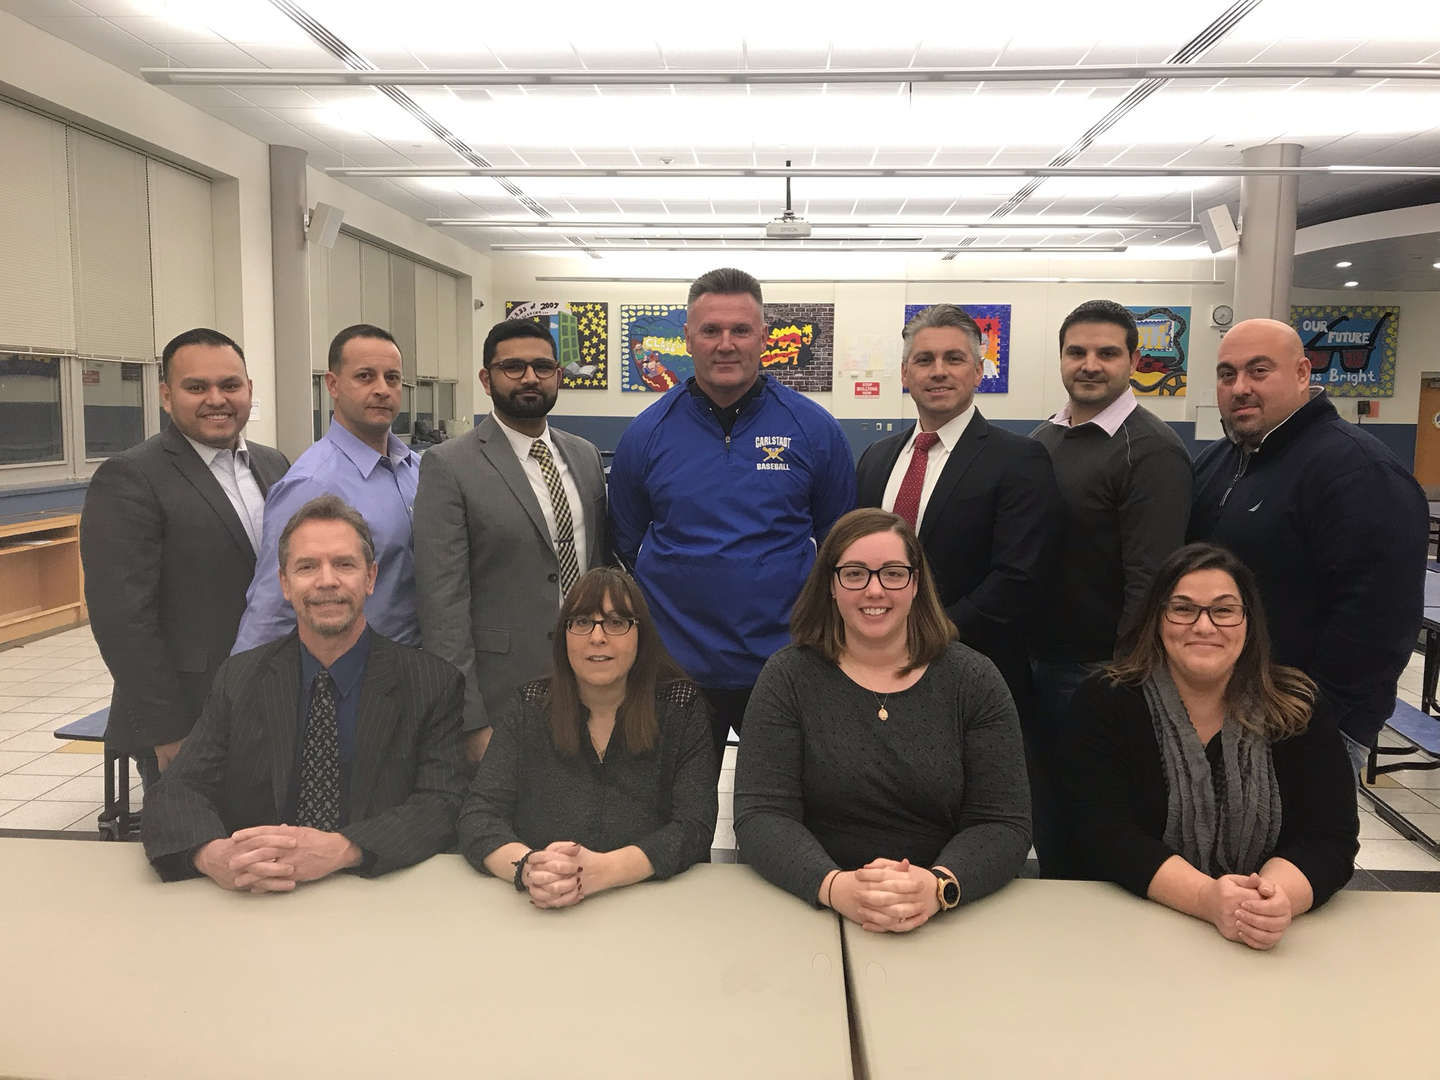 carlstadt board of education members